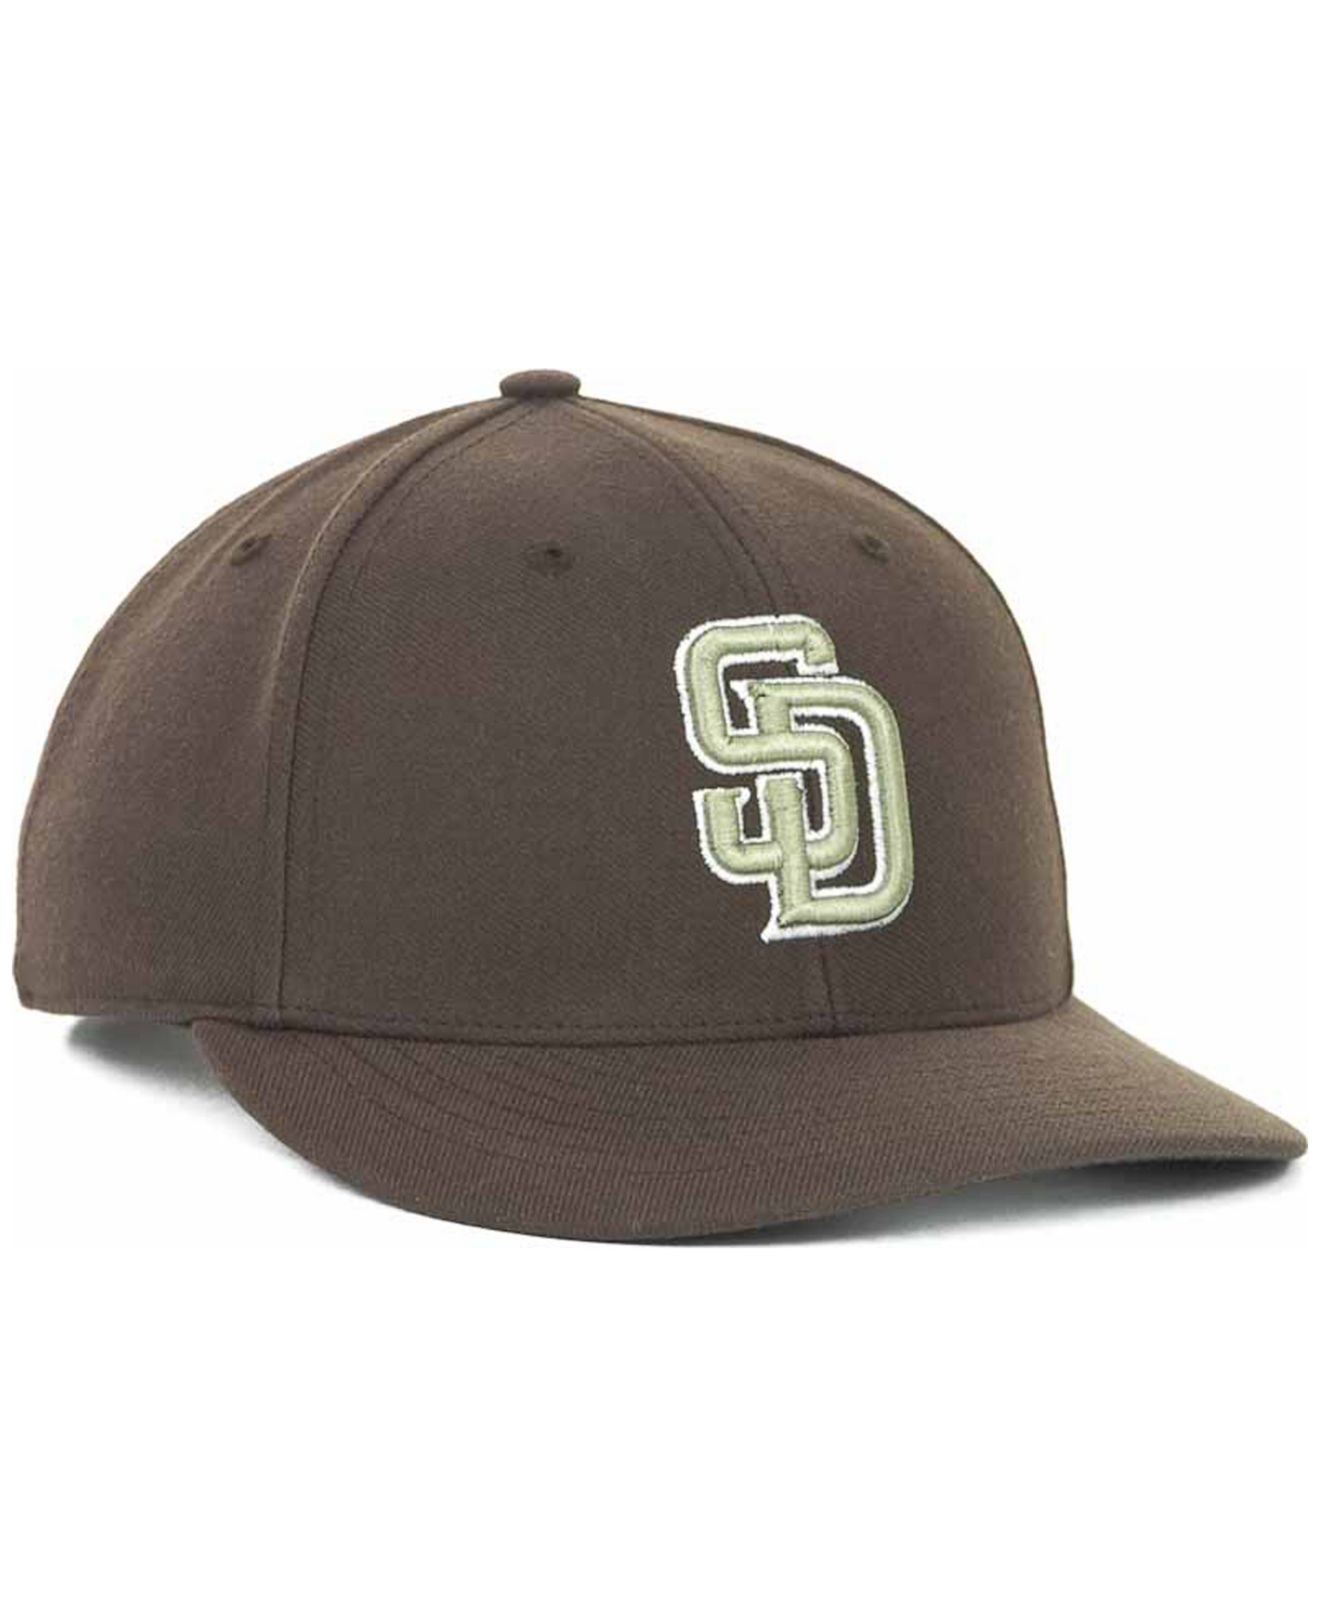 1b783671f471a Lyst - 47 Brand San Diego Padres Mvp Cap in Brown for Men